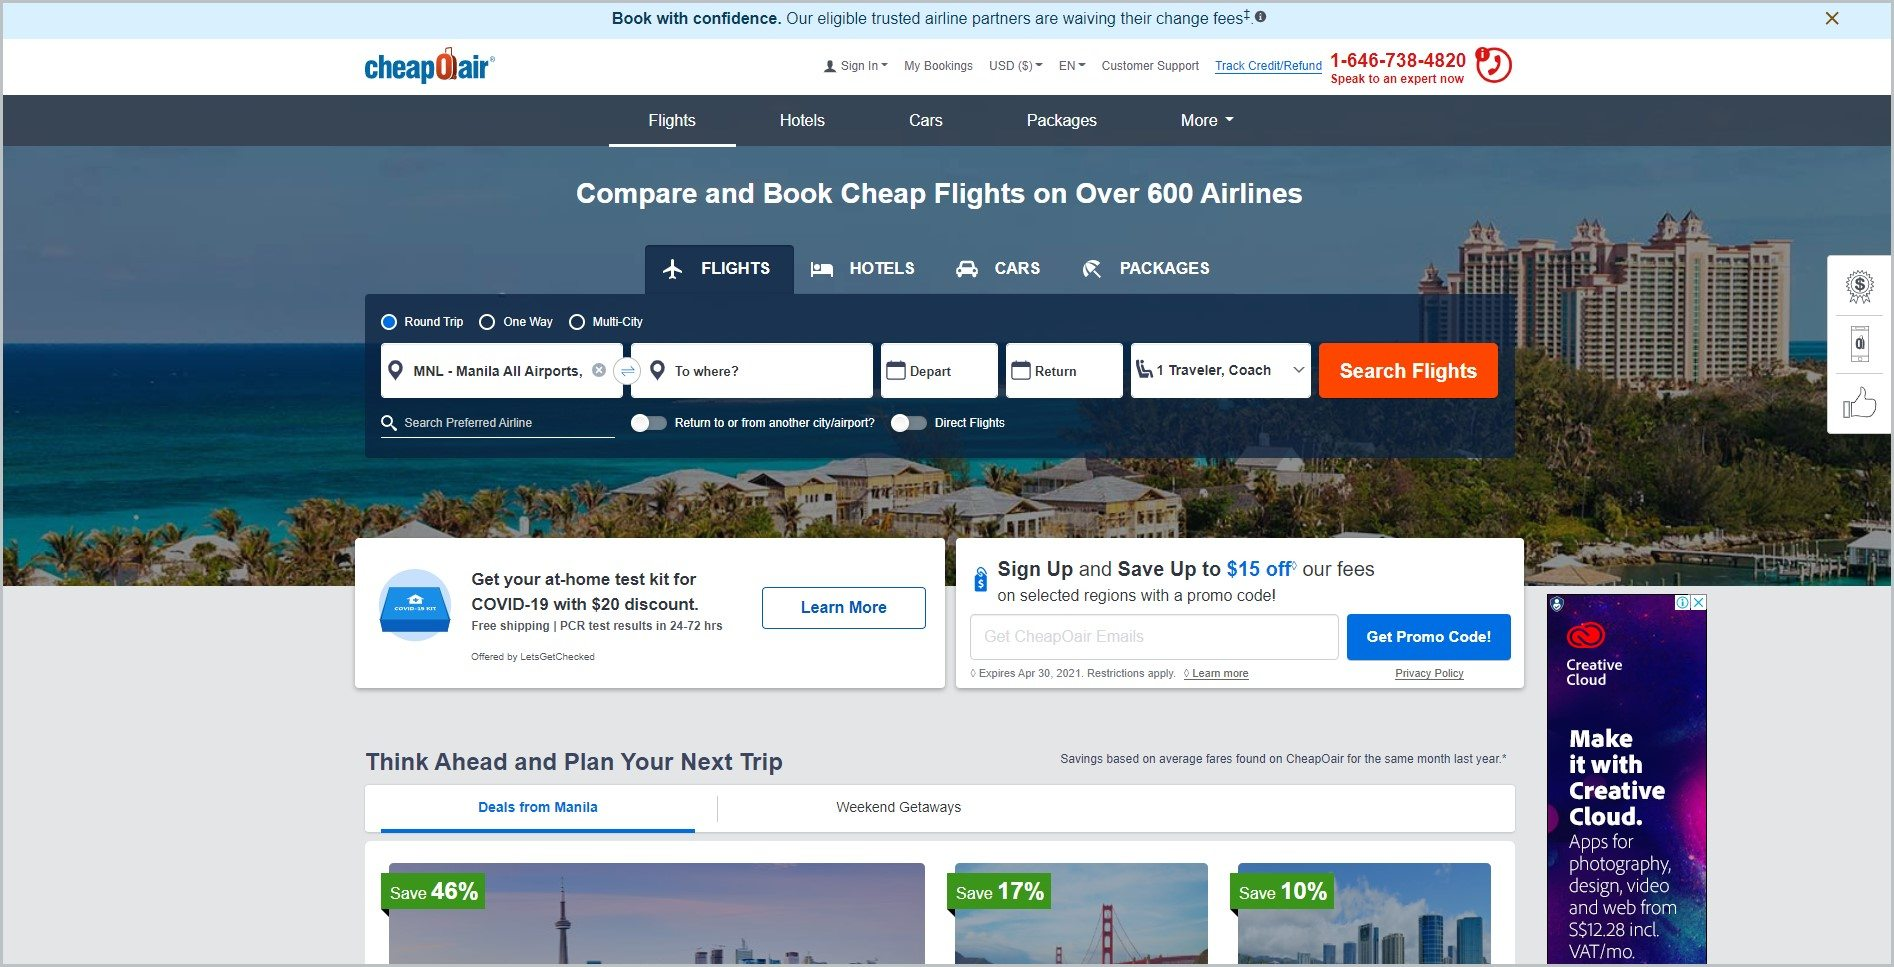 screenshot of CheapOair homepage, with sky blue announcement bar, white header with the website's name and other info, underneath it is a dark blue navigation bar